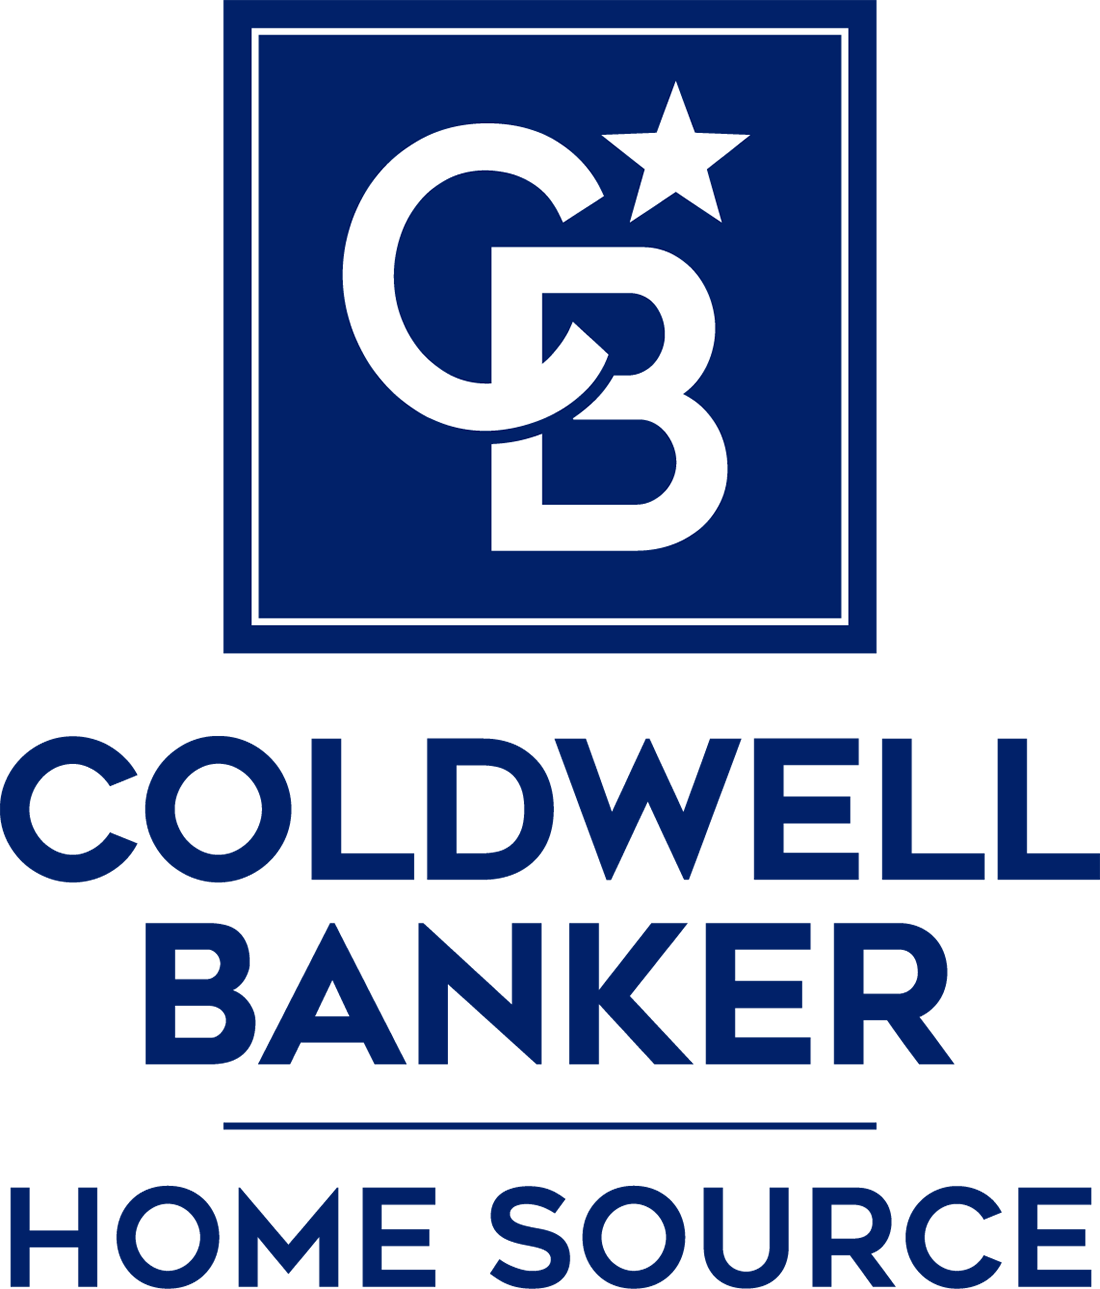 Kashawna Berg - Coldwell Banker Home Source Logo